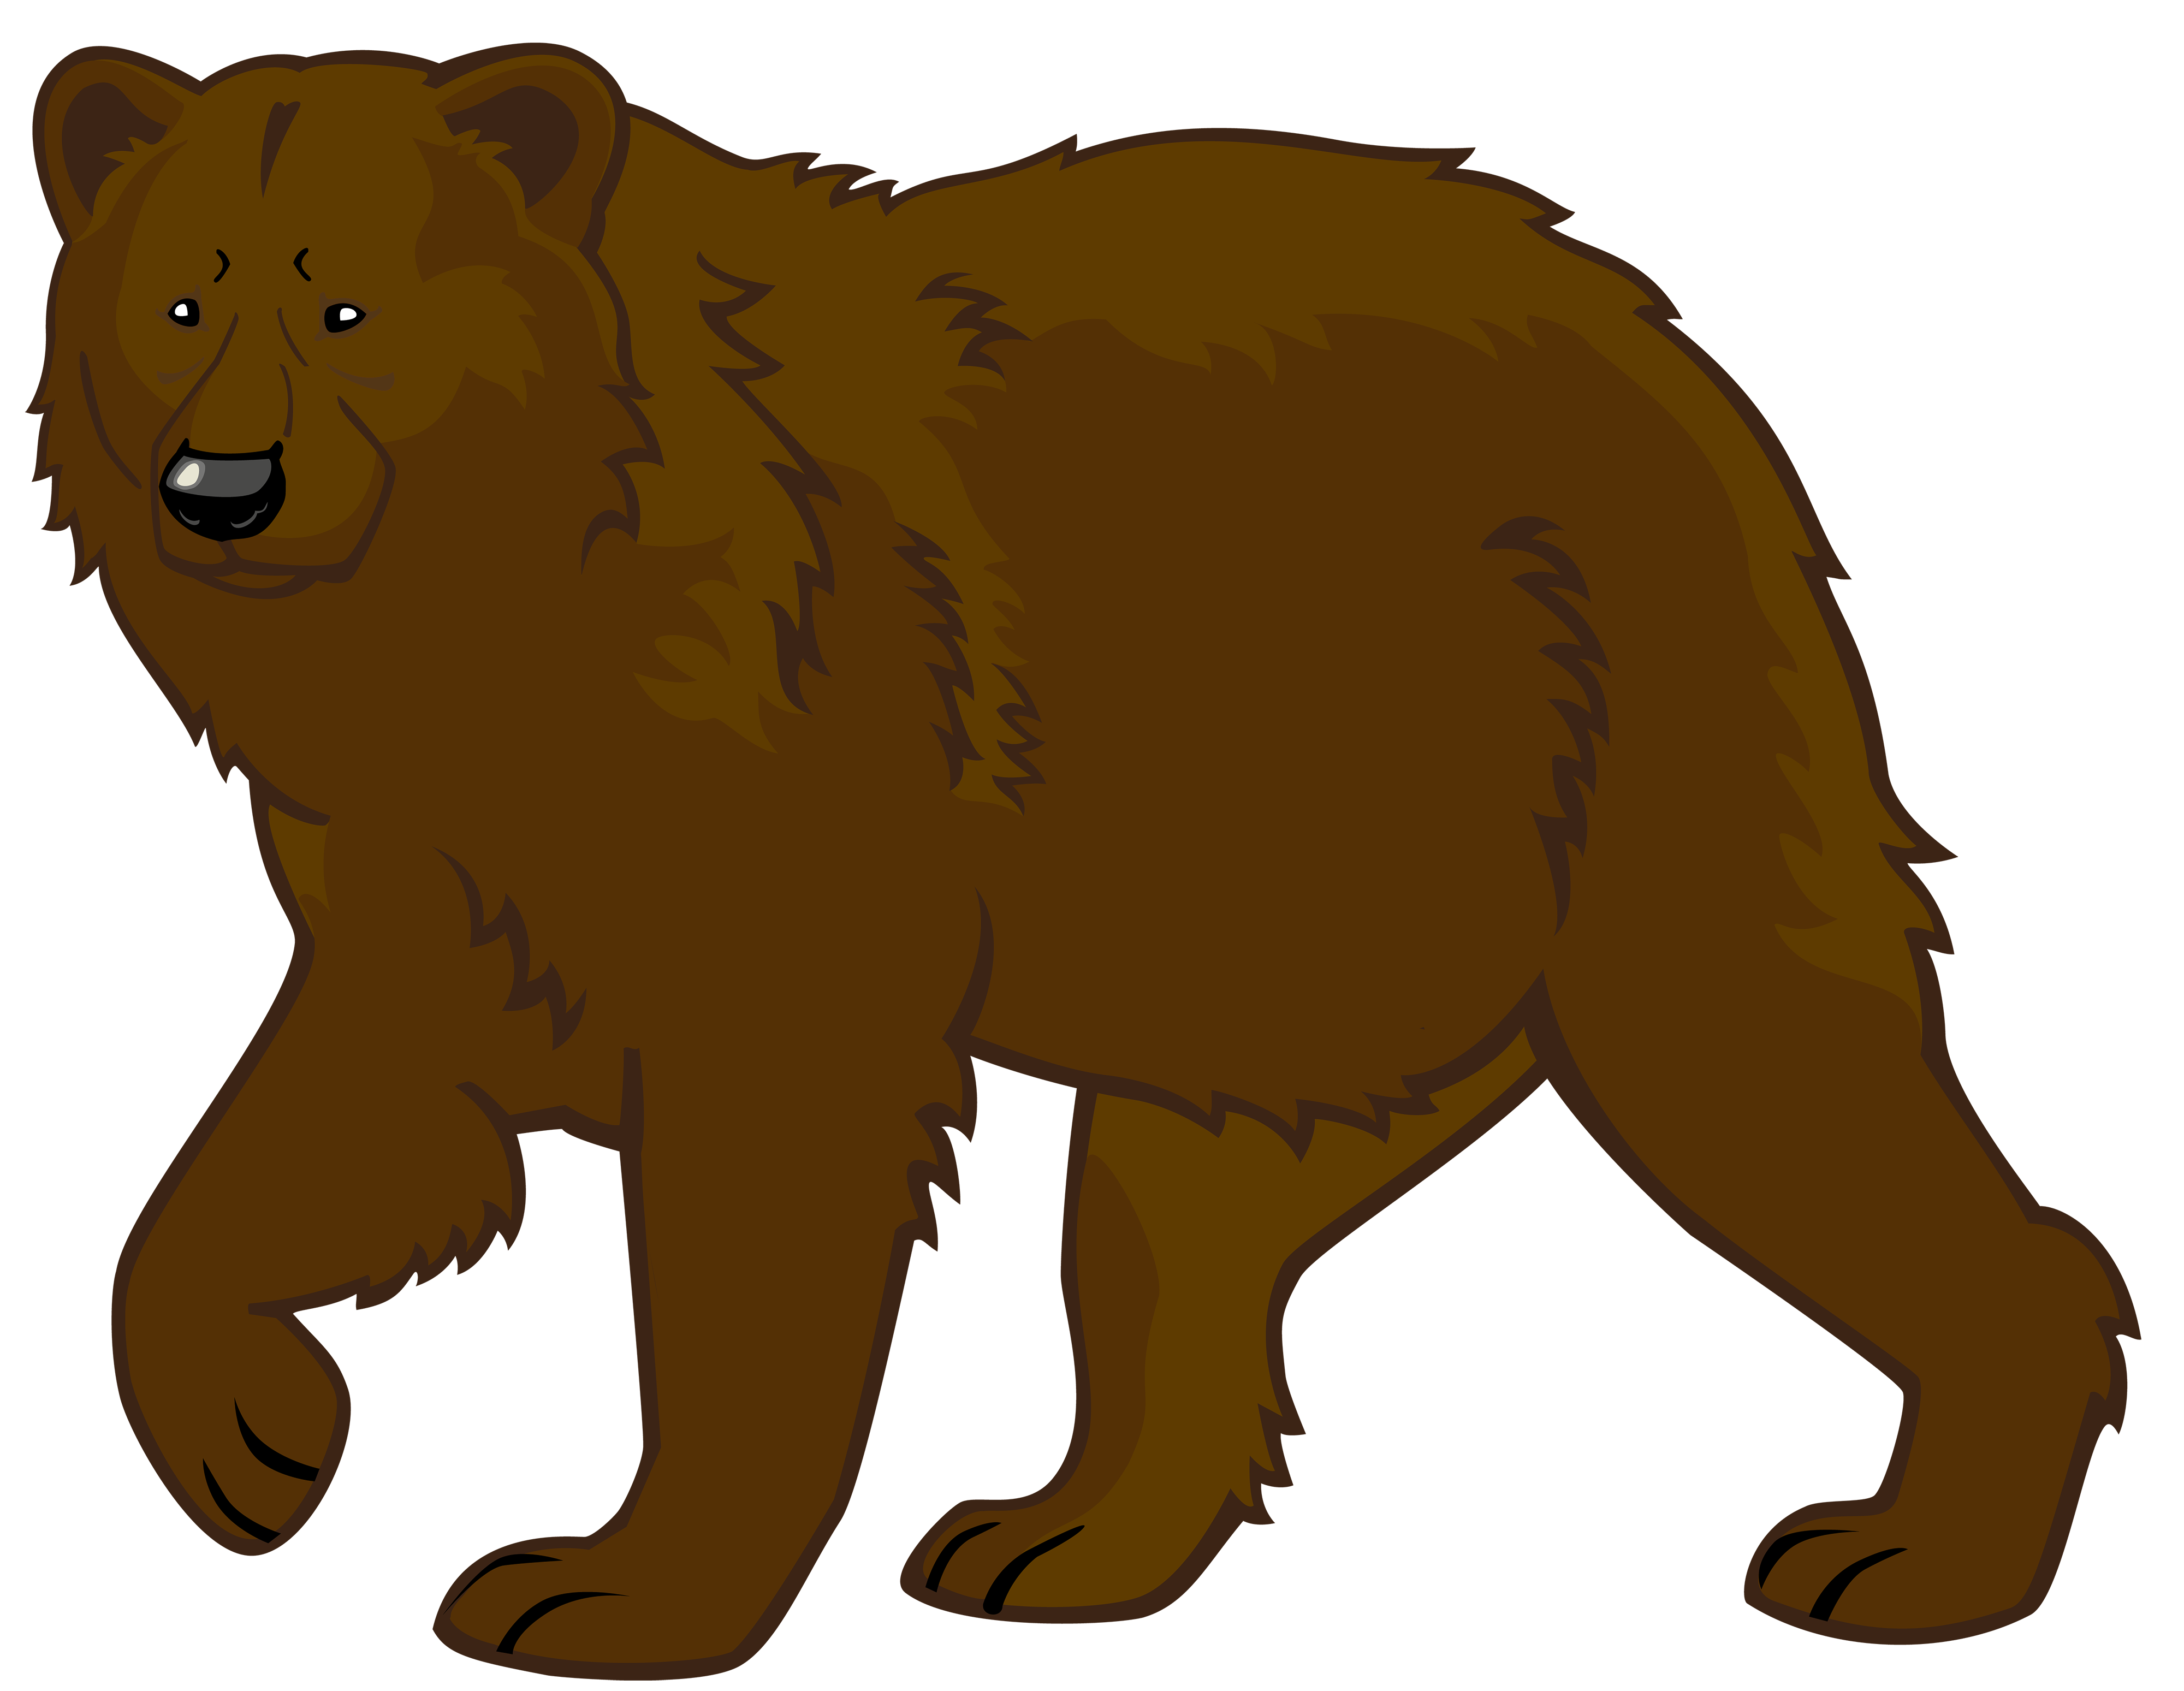 Cute school bear clipart image freeuse library Brown Bear PNG Clipart - Best WEB Clipart image freeuse library